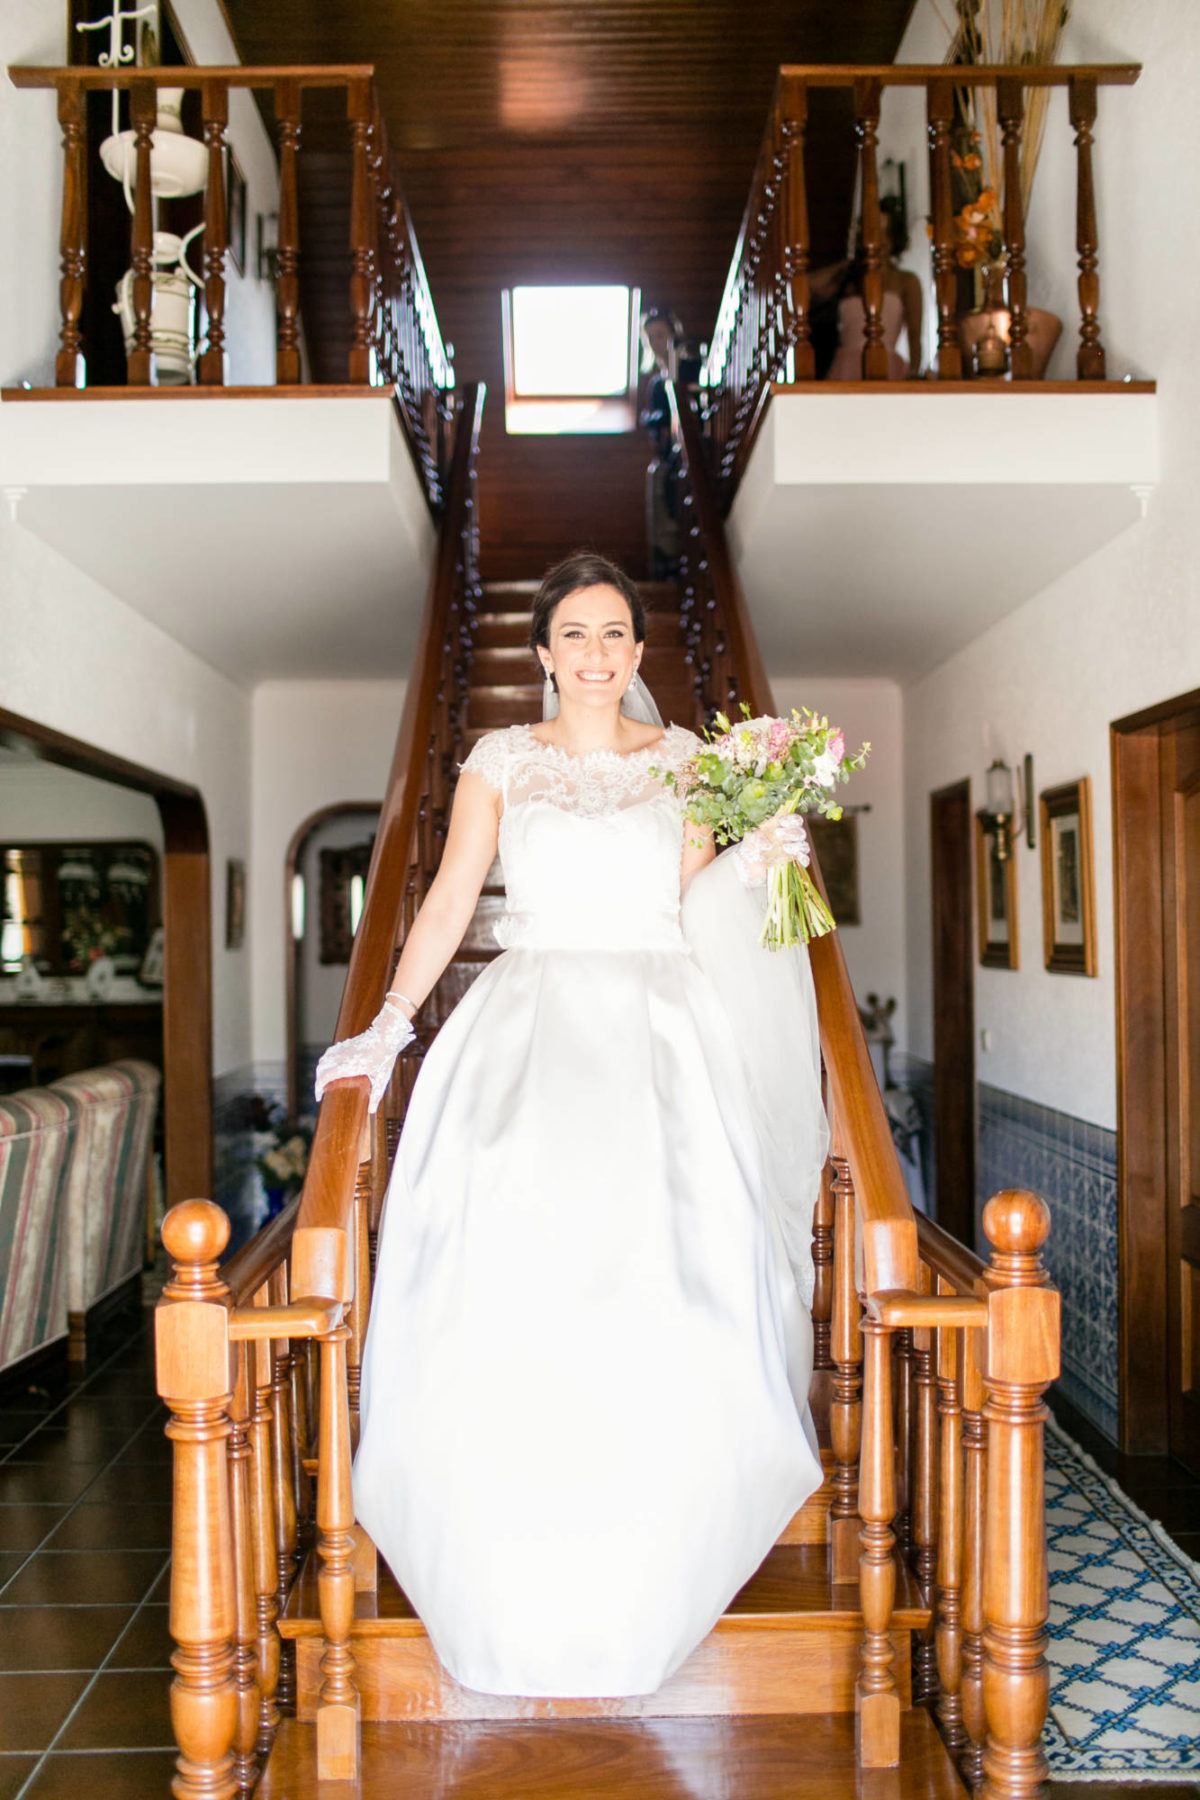 Bride coming down the stairs holding bouquet